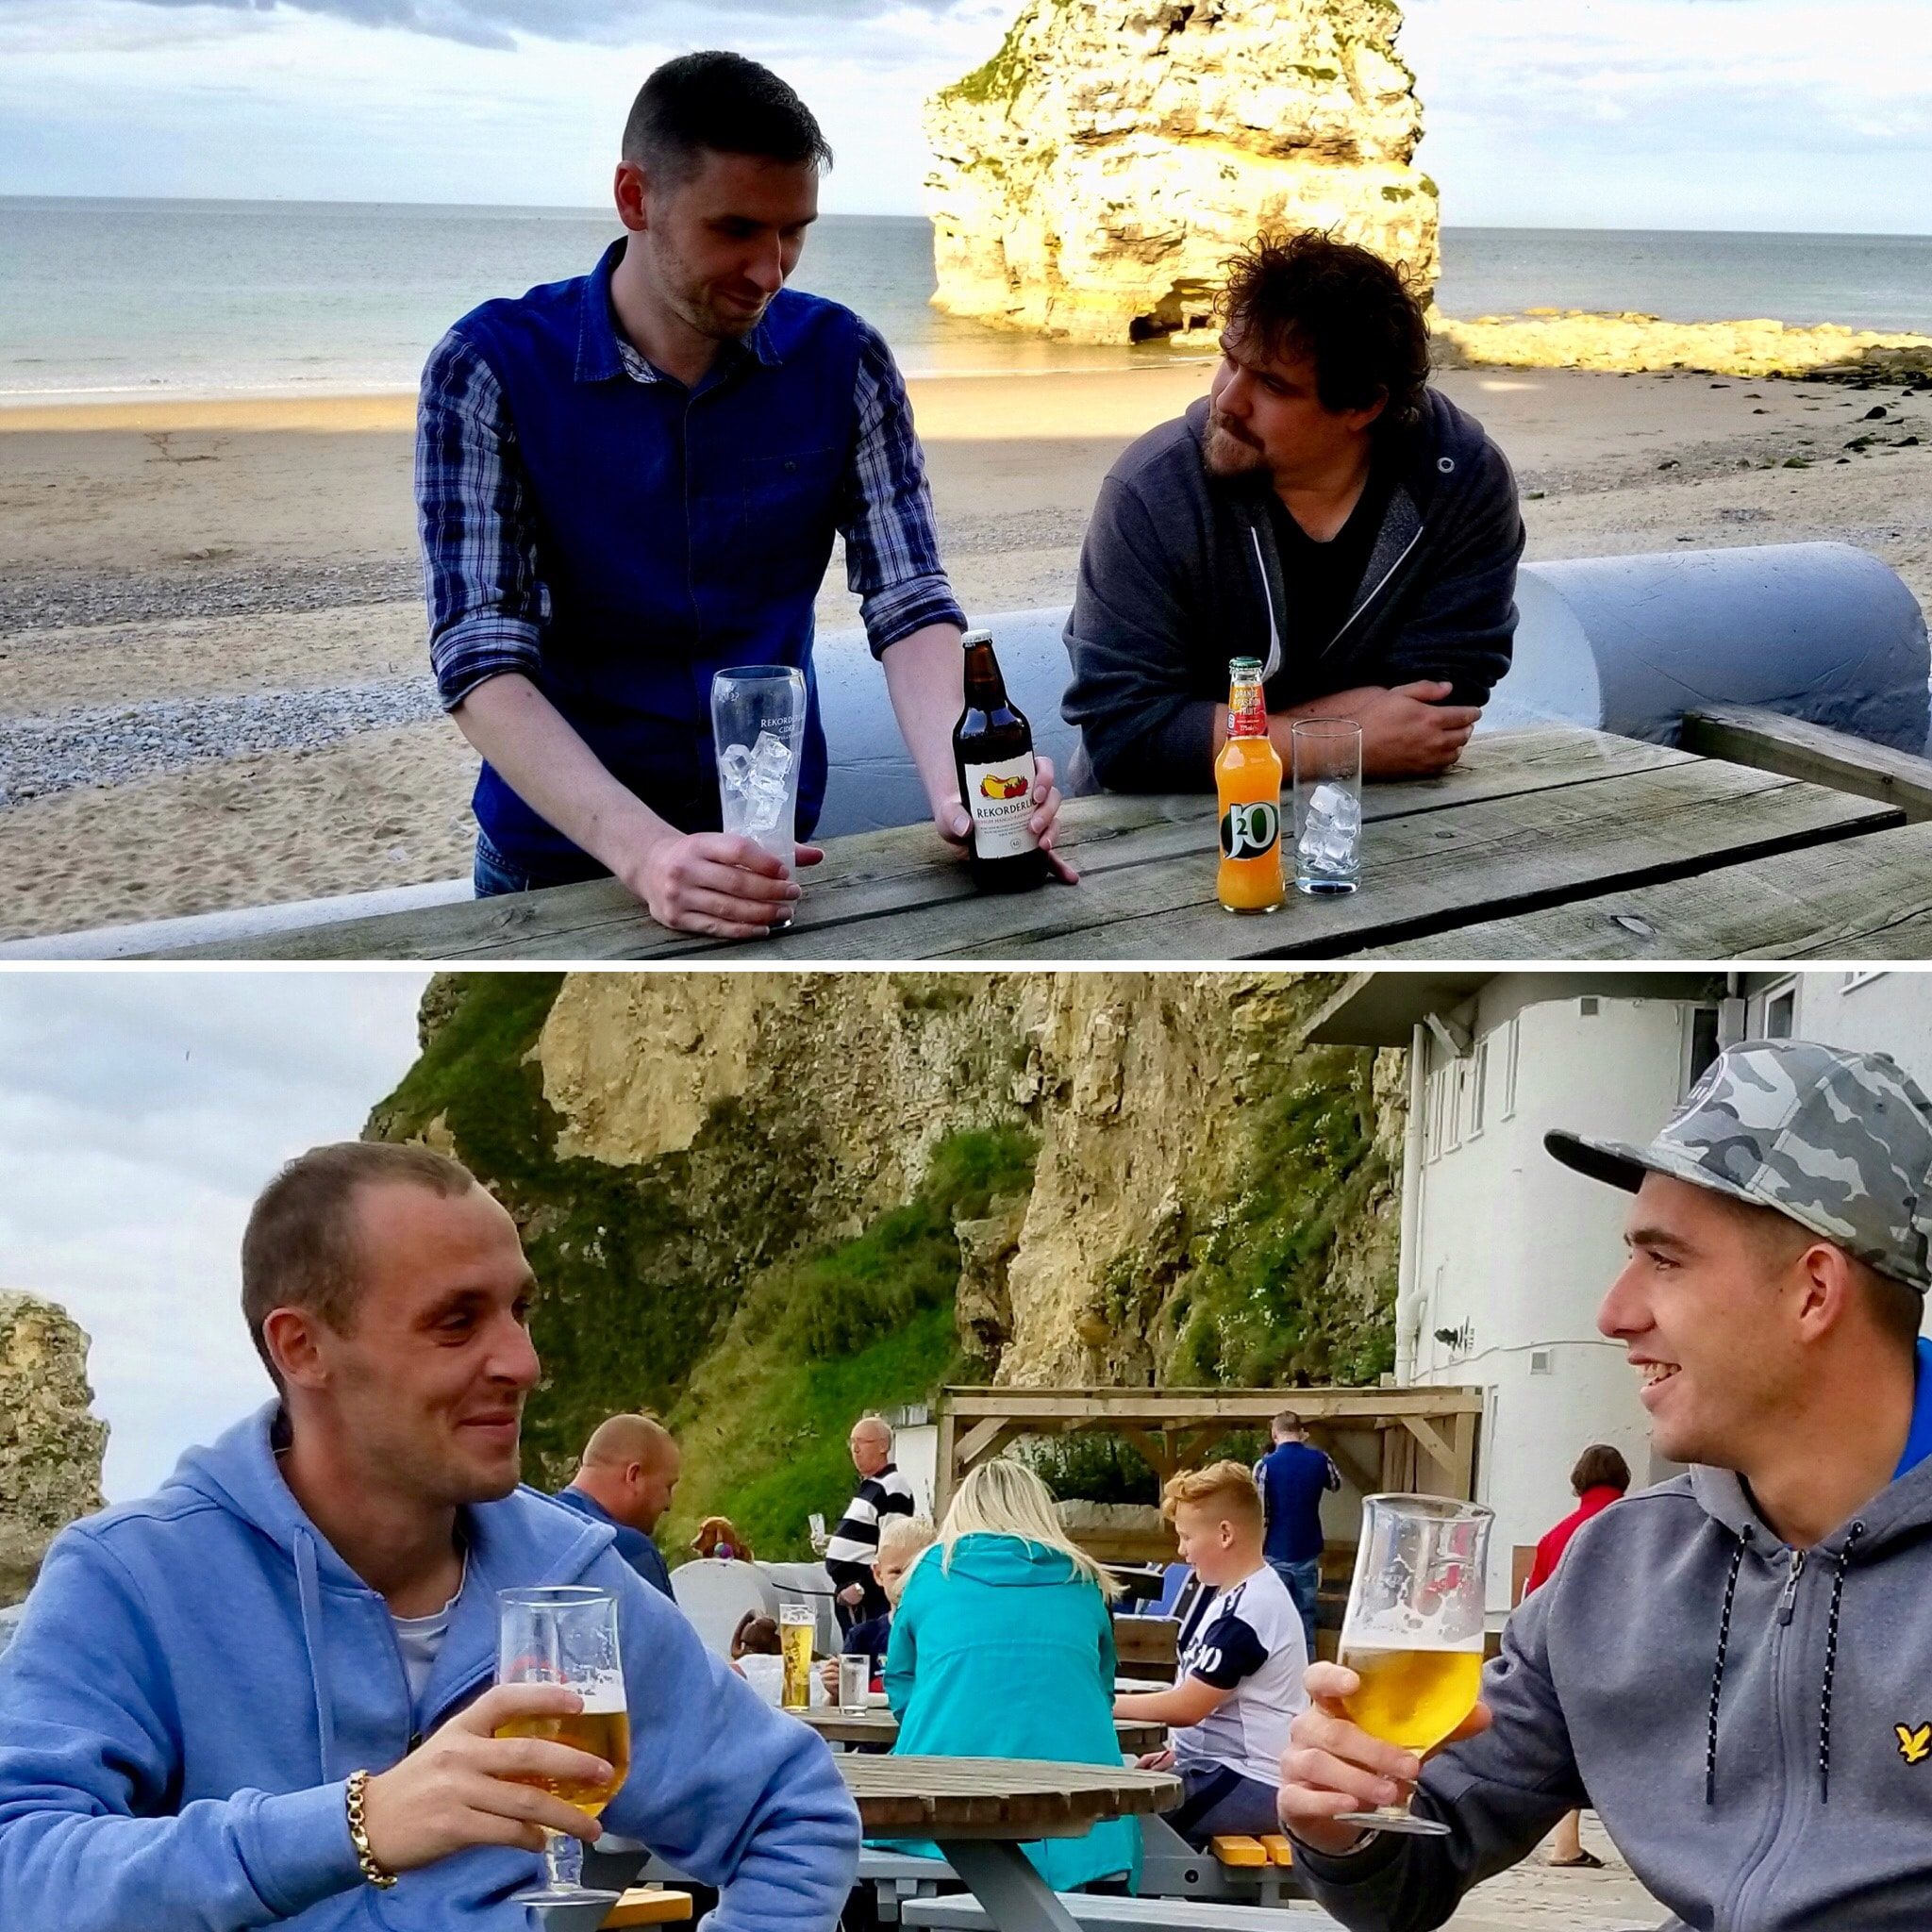 Sunsets from the Grotto are spectacular. Top image Matthew James Arkle and Mark Fisher soak up the sun at happy hour. and bottom, locals enjoy a pint on the patio. (Image credit: Michael Mackie).